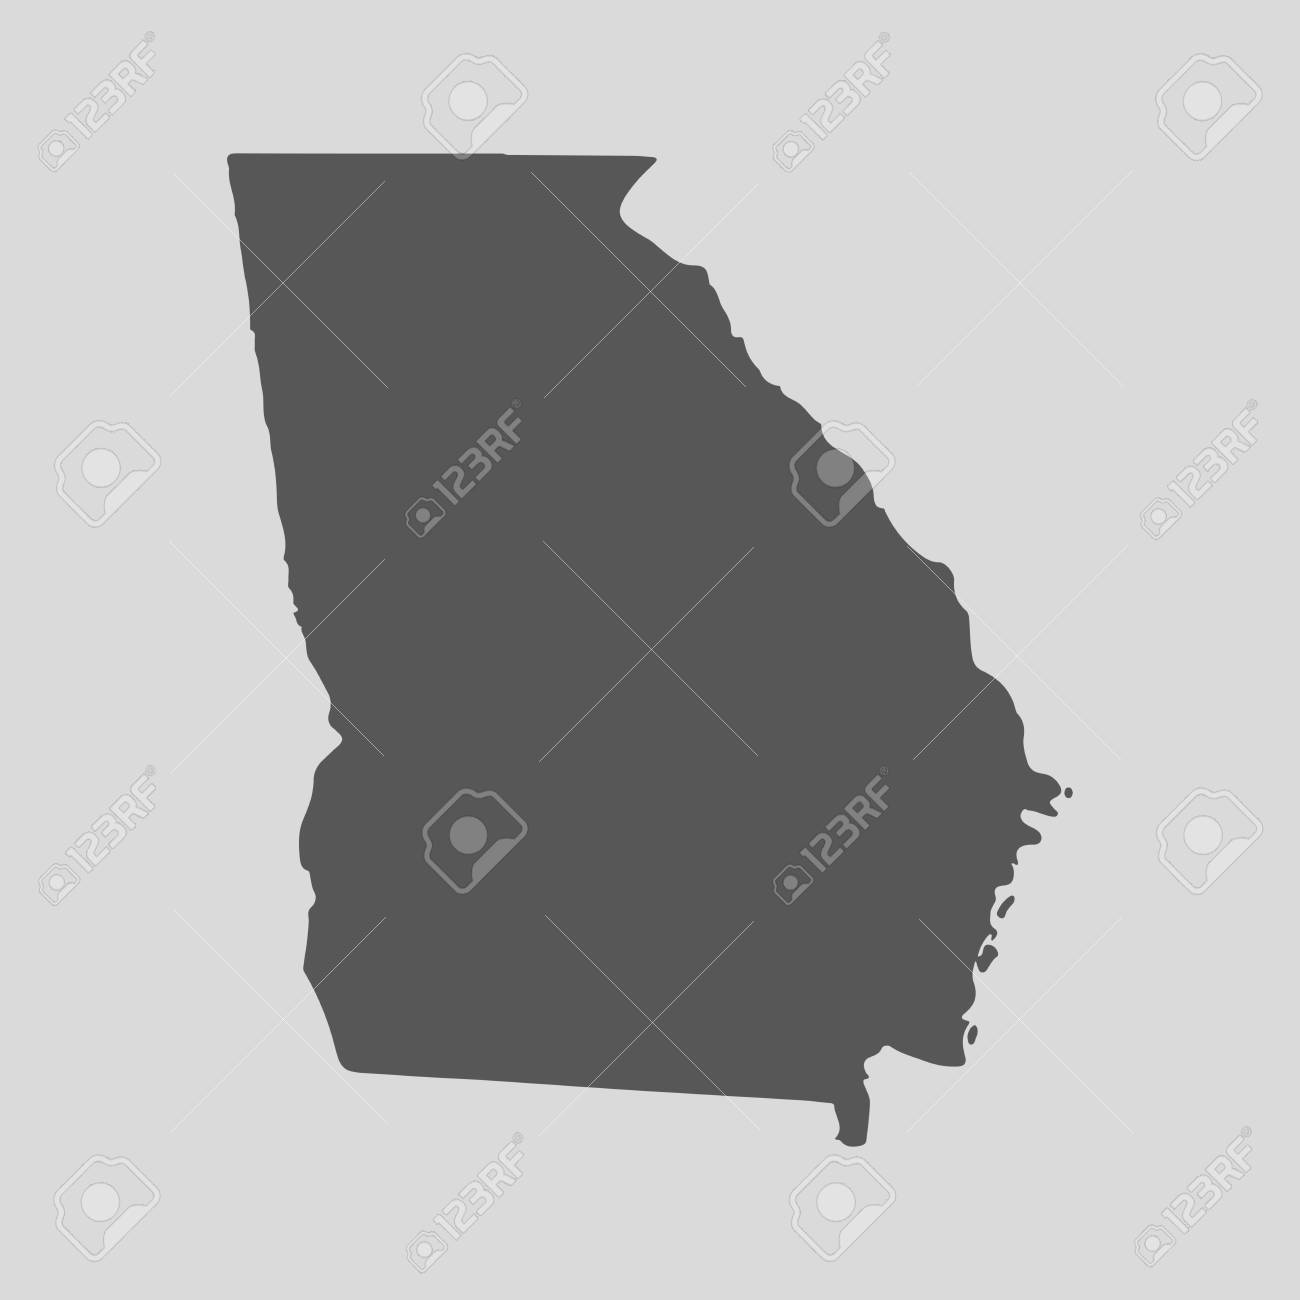 Map Of The State Of Georgia.Black Map Of The State Of Georgia Vector Illustration Simple